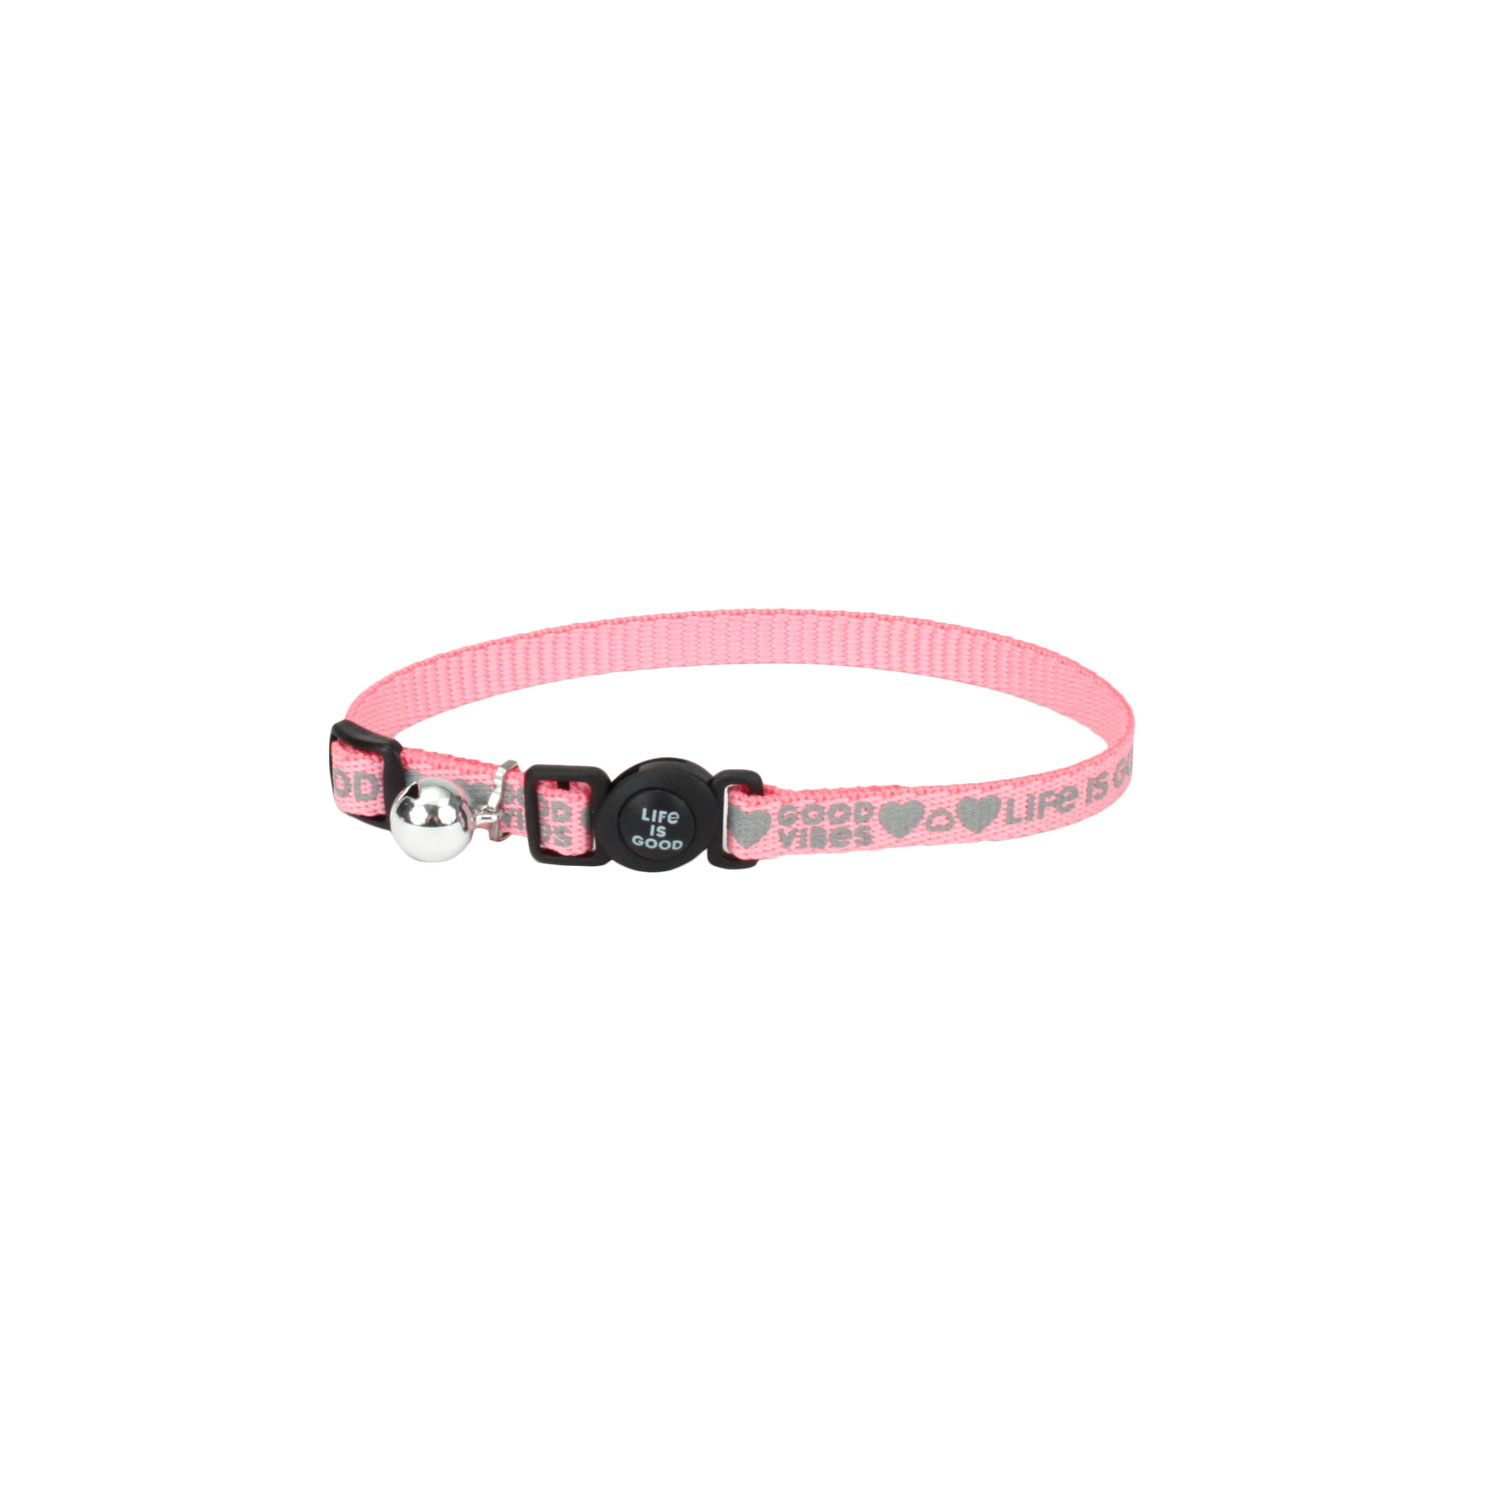 Life is Good® Reflective Adjustable Cat Collar